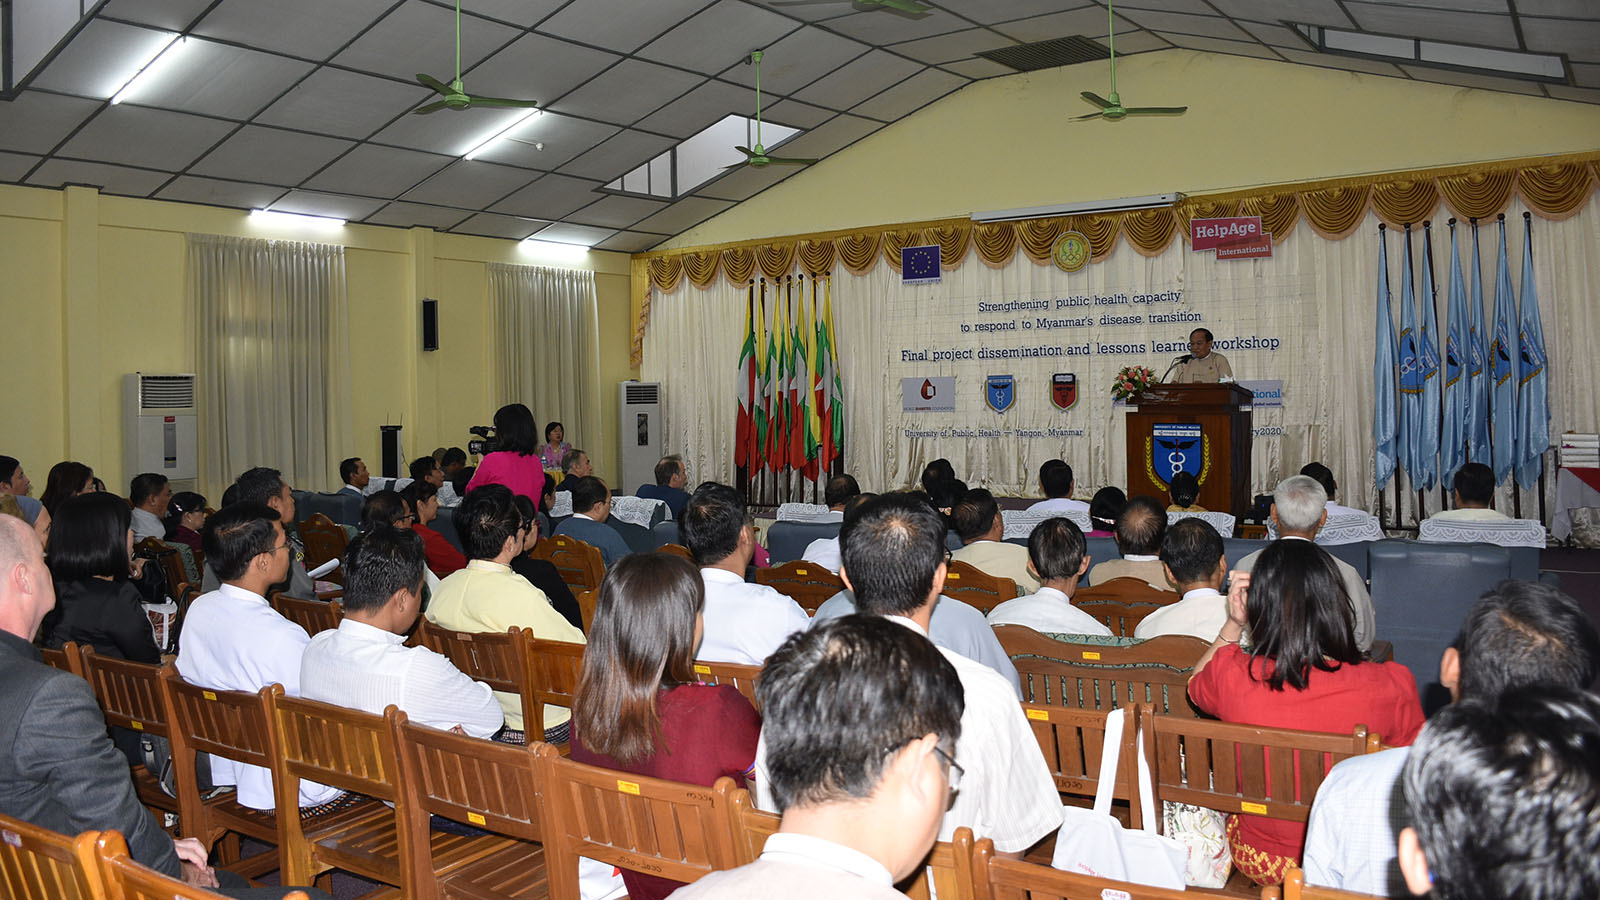 Union Minister Dr Myint Htwe delivers the speech at the Public Health Capacity Workshop in Yangon yesterday. Photo: MNA